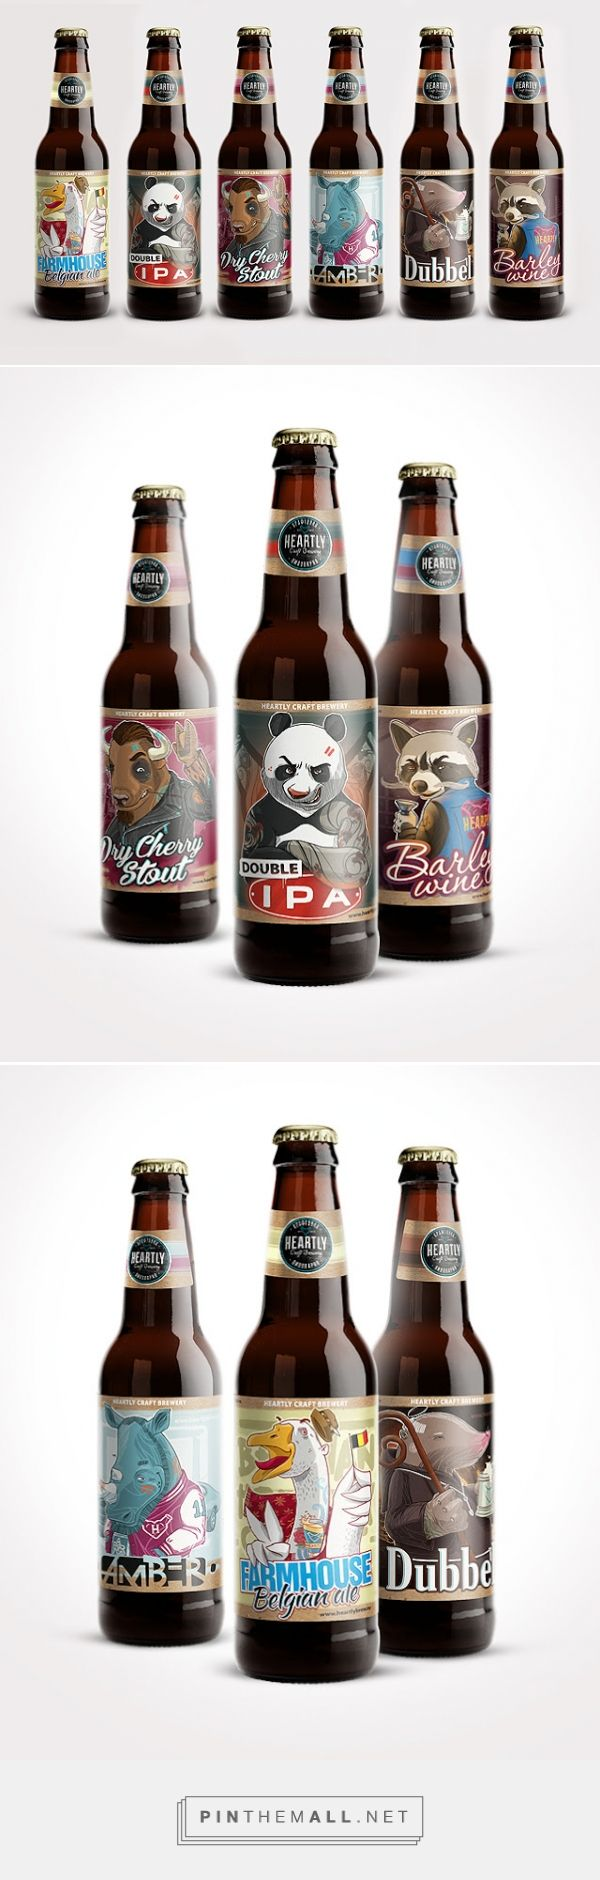 Heartly Craft Beer packaging designed by CUBA Creative Branding Studio - http://www.packagingoftheworld.com/2015/08/heartly-craft-beer.html